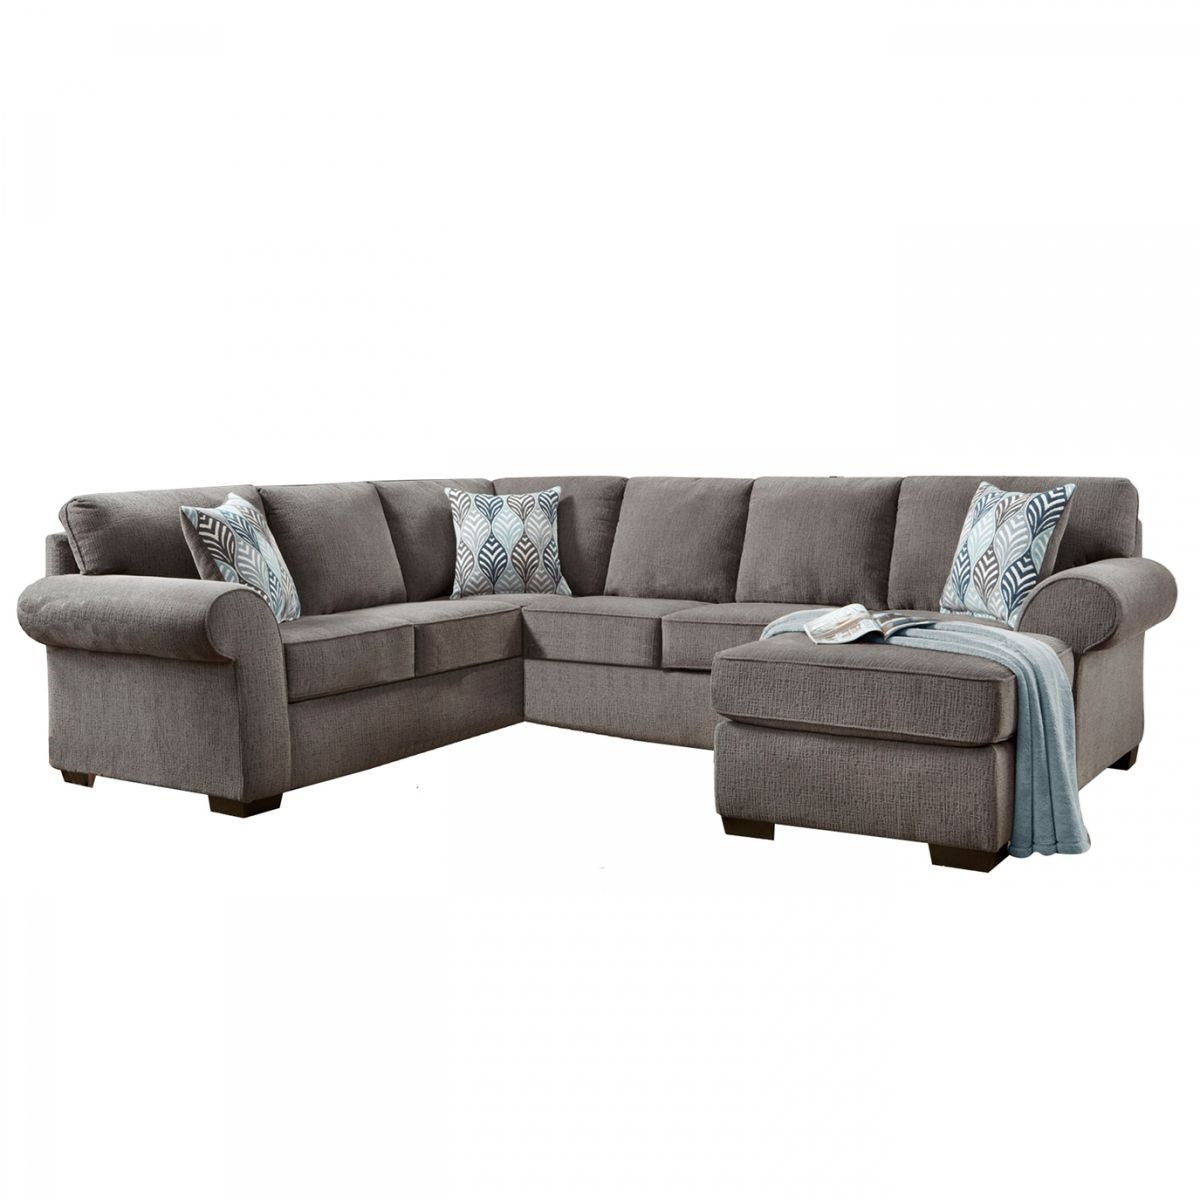 Fabric Sectional Sofa In Grey Shop For Affordable Home Furniture In Mcdade Graphite Sofa Chairs (Image 5 of 20)